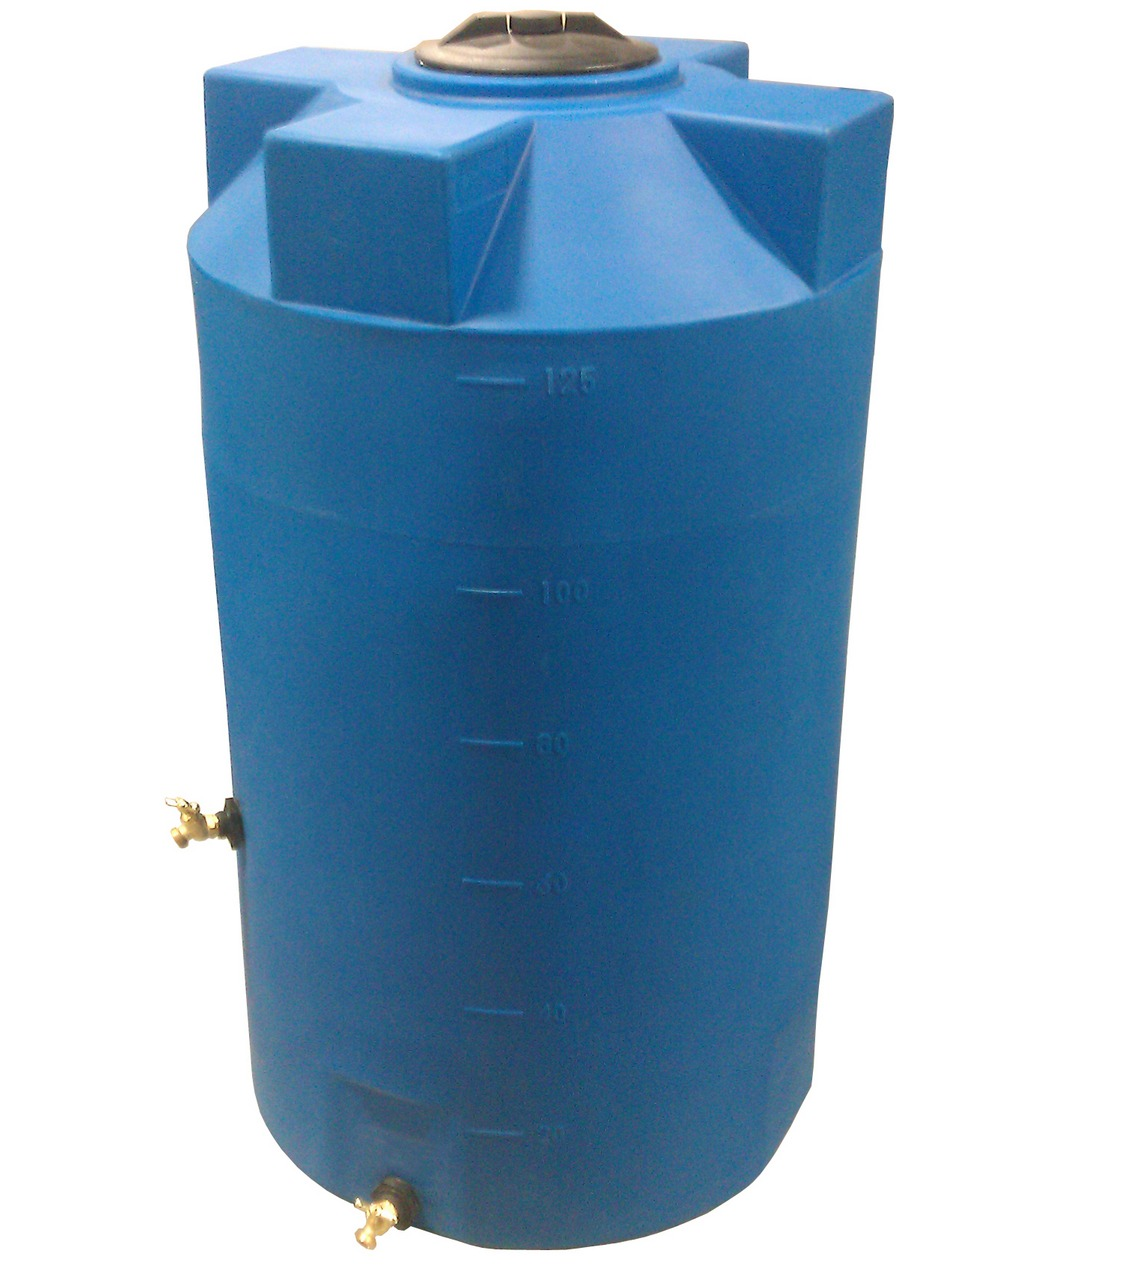 sc 1 st  Tanks For Less & PolyMart 150 Gallon Emergency Plastic Water Storage Tank